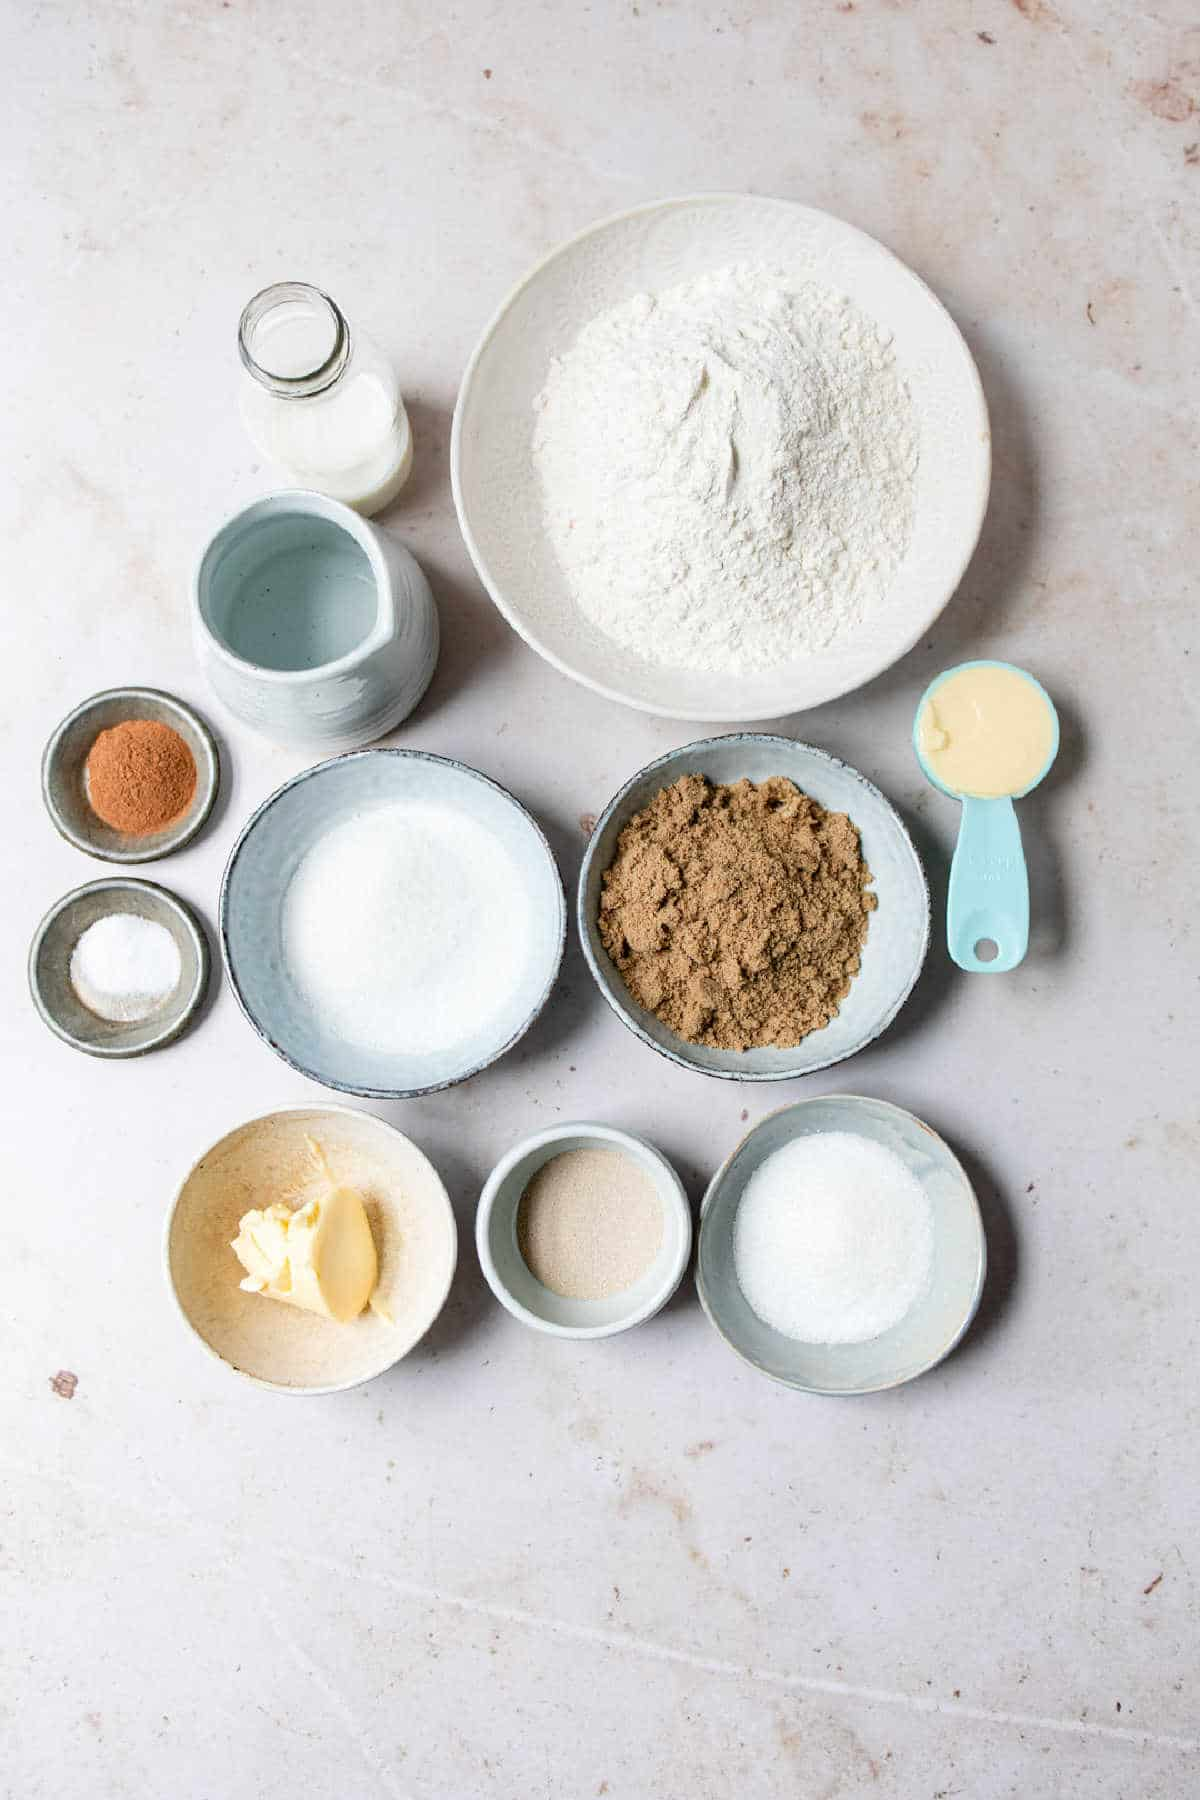 Ingredients for cinnamon twist bread in dishes.